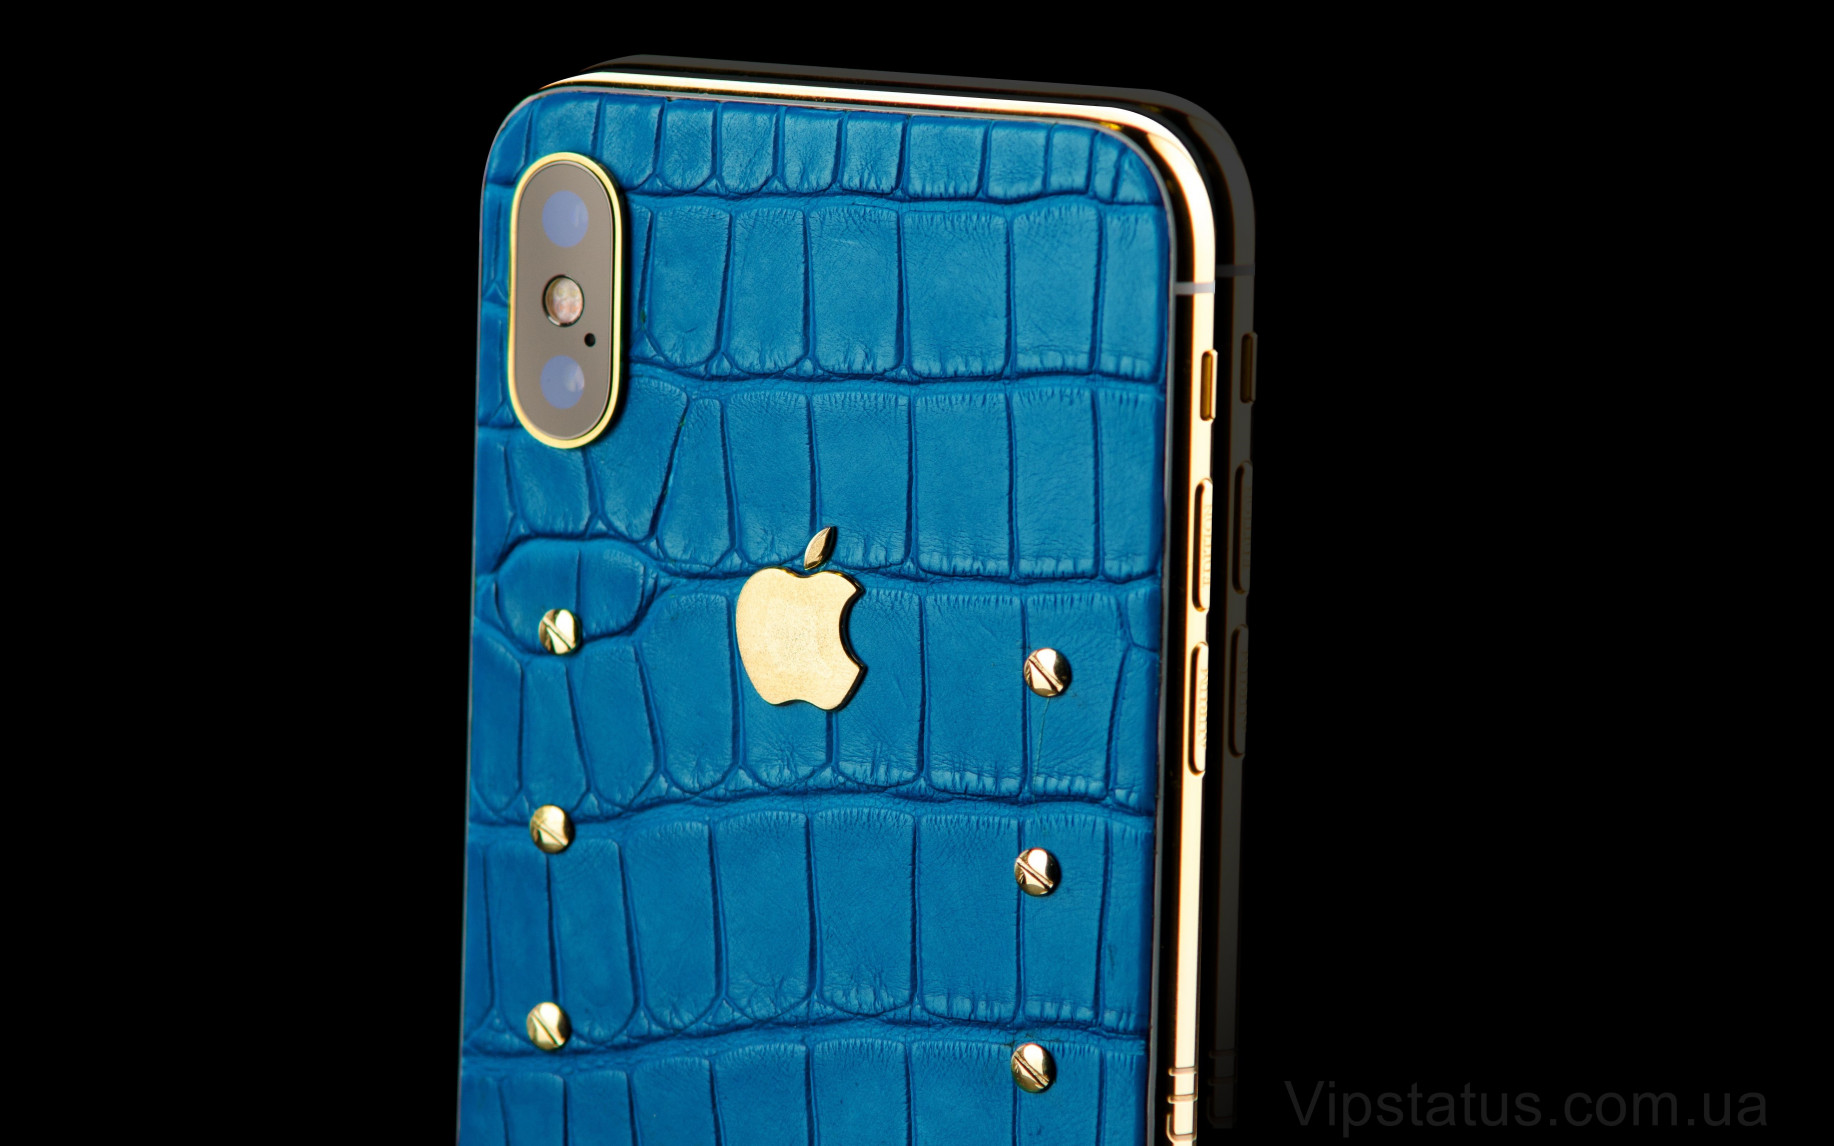 Elite Blue Lord IPHONE 11 PRO MAX 512 GB Blue Lord IPHONE 11 PRO MAX 512 GB image 3